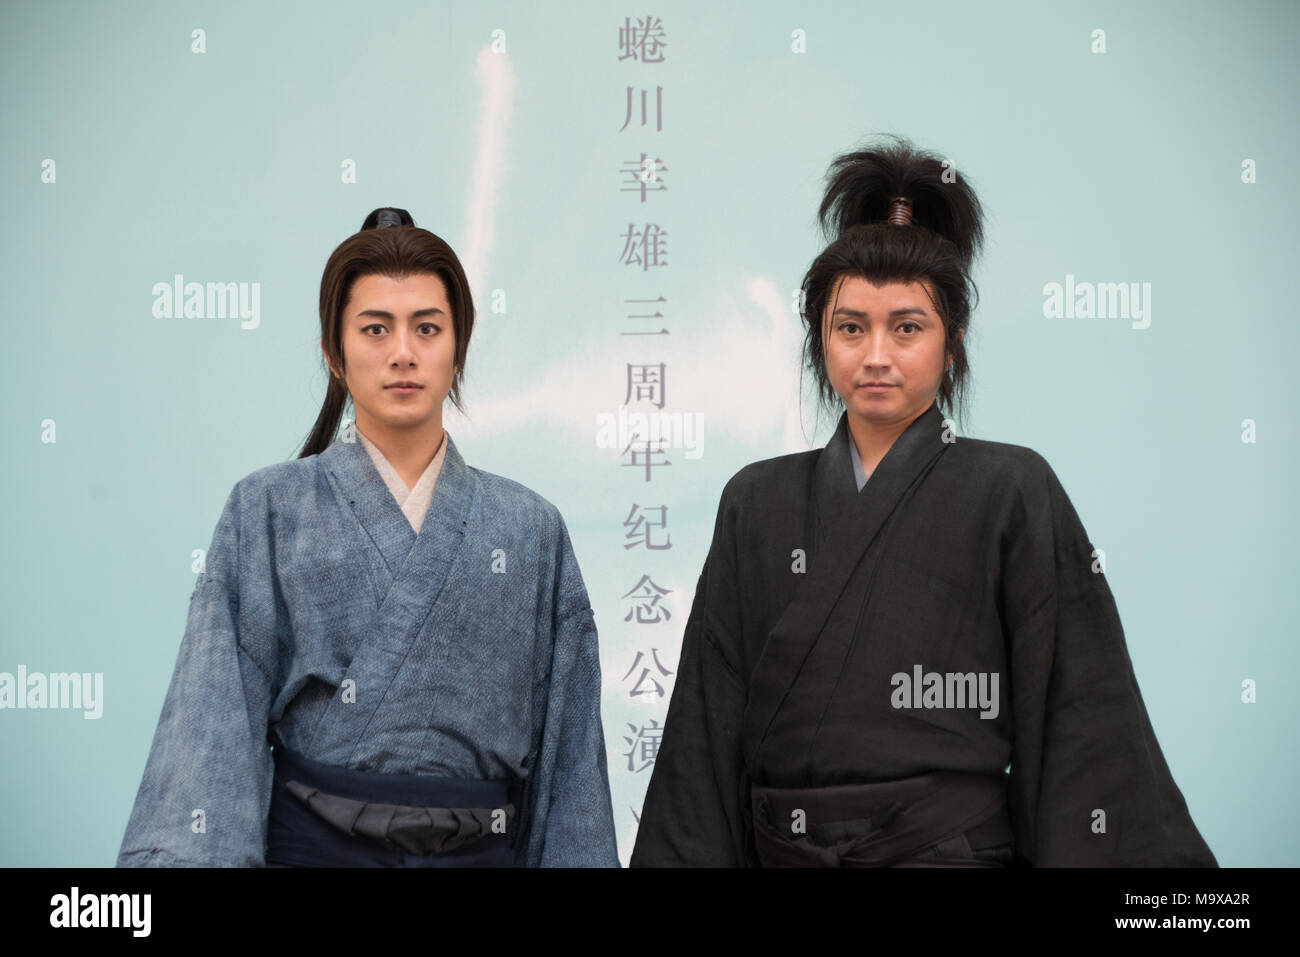 Japanese Actors Stock Photos & Japanese Actors Stock Images - Alamy